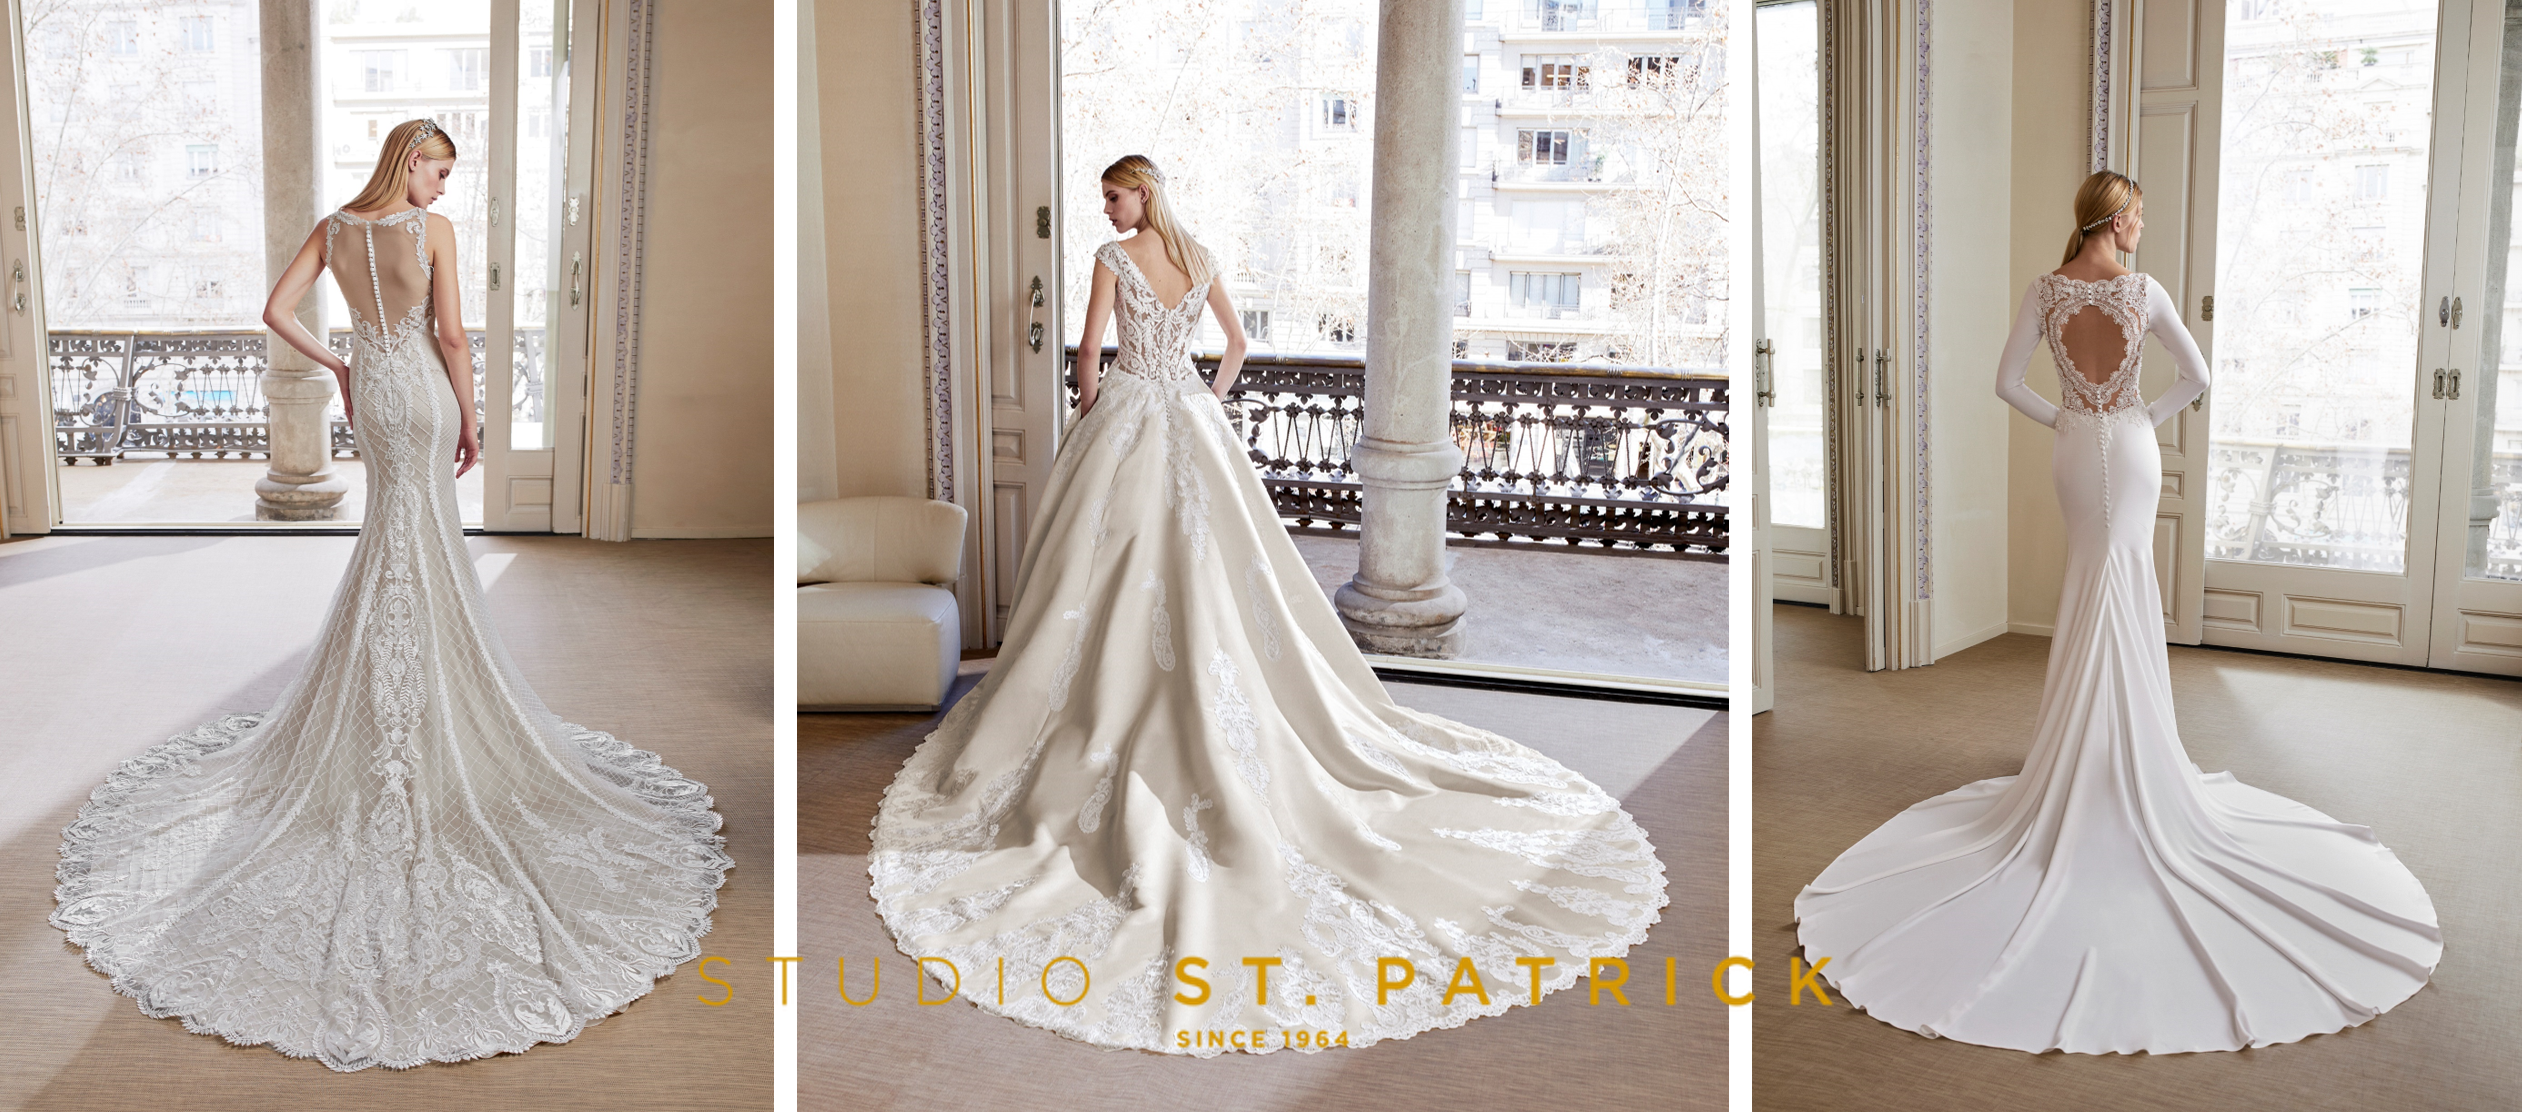 Studio St Patrick Pronovias Fashion Group Colecao 2020